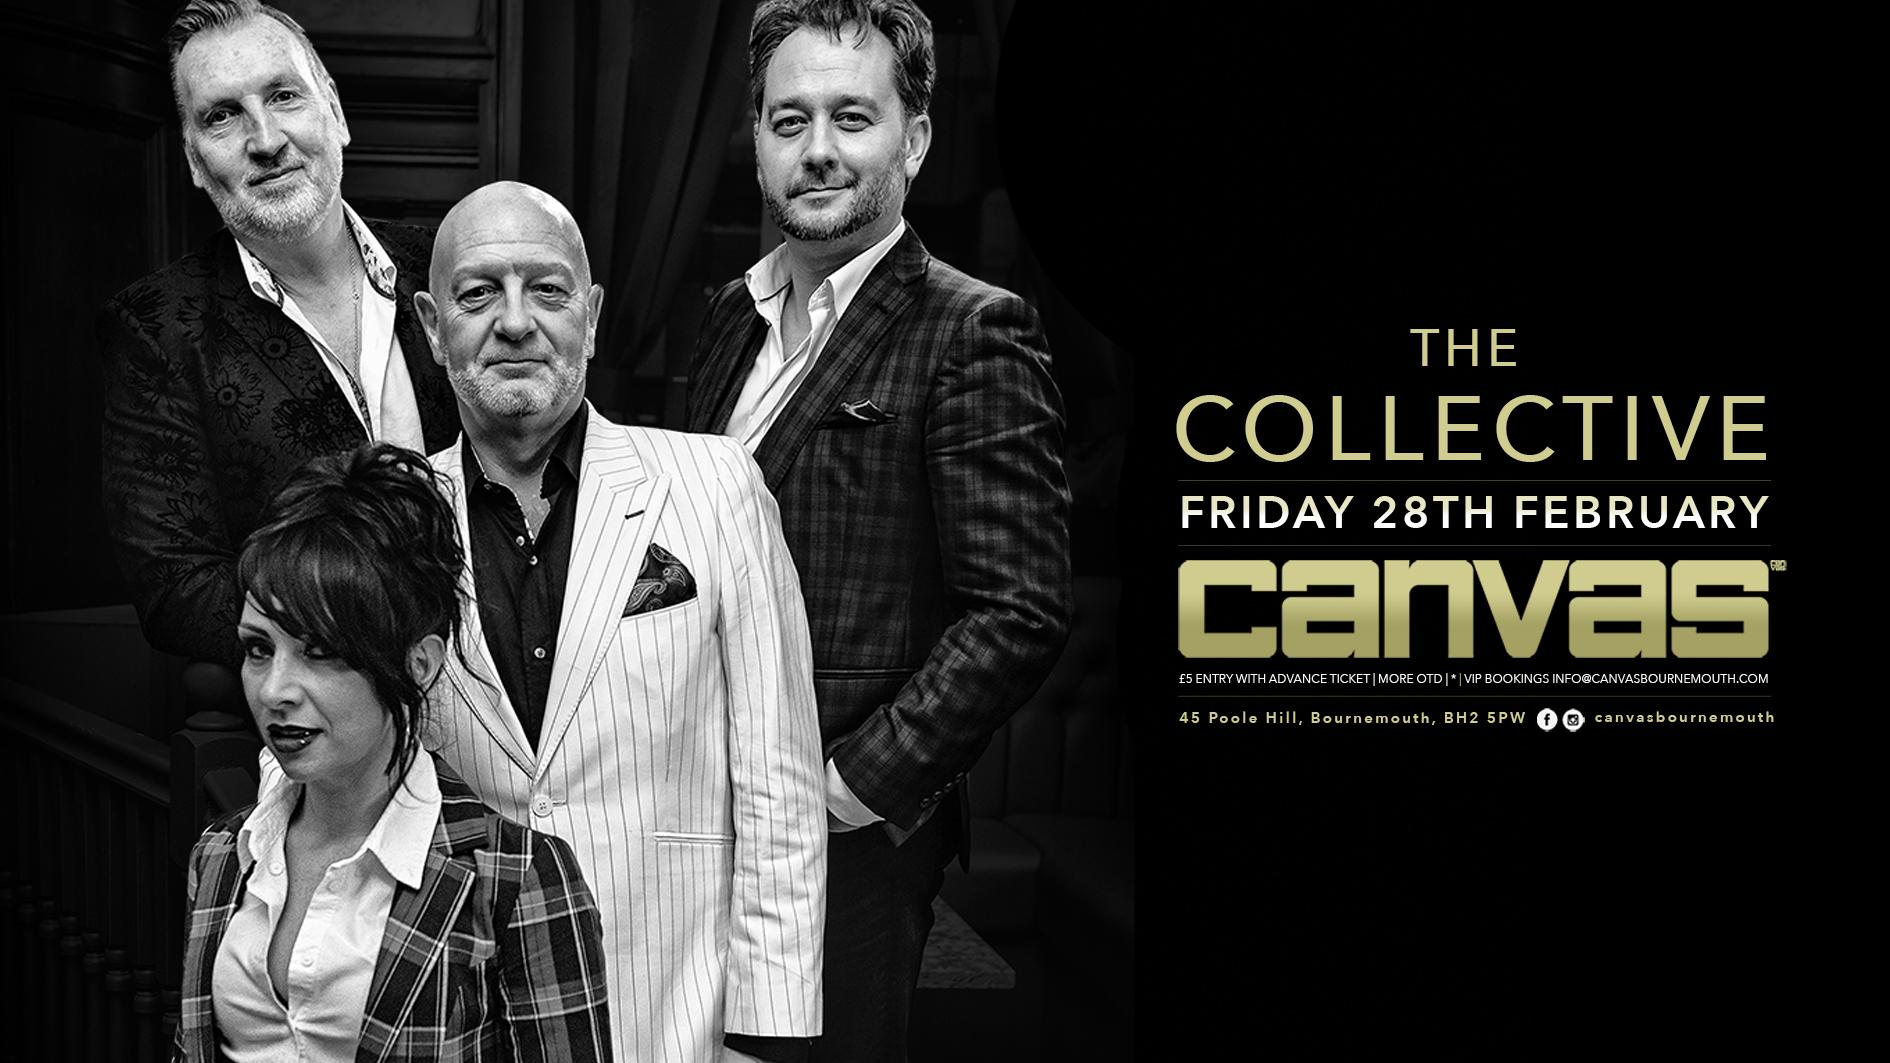 The Collective Presents...